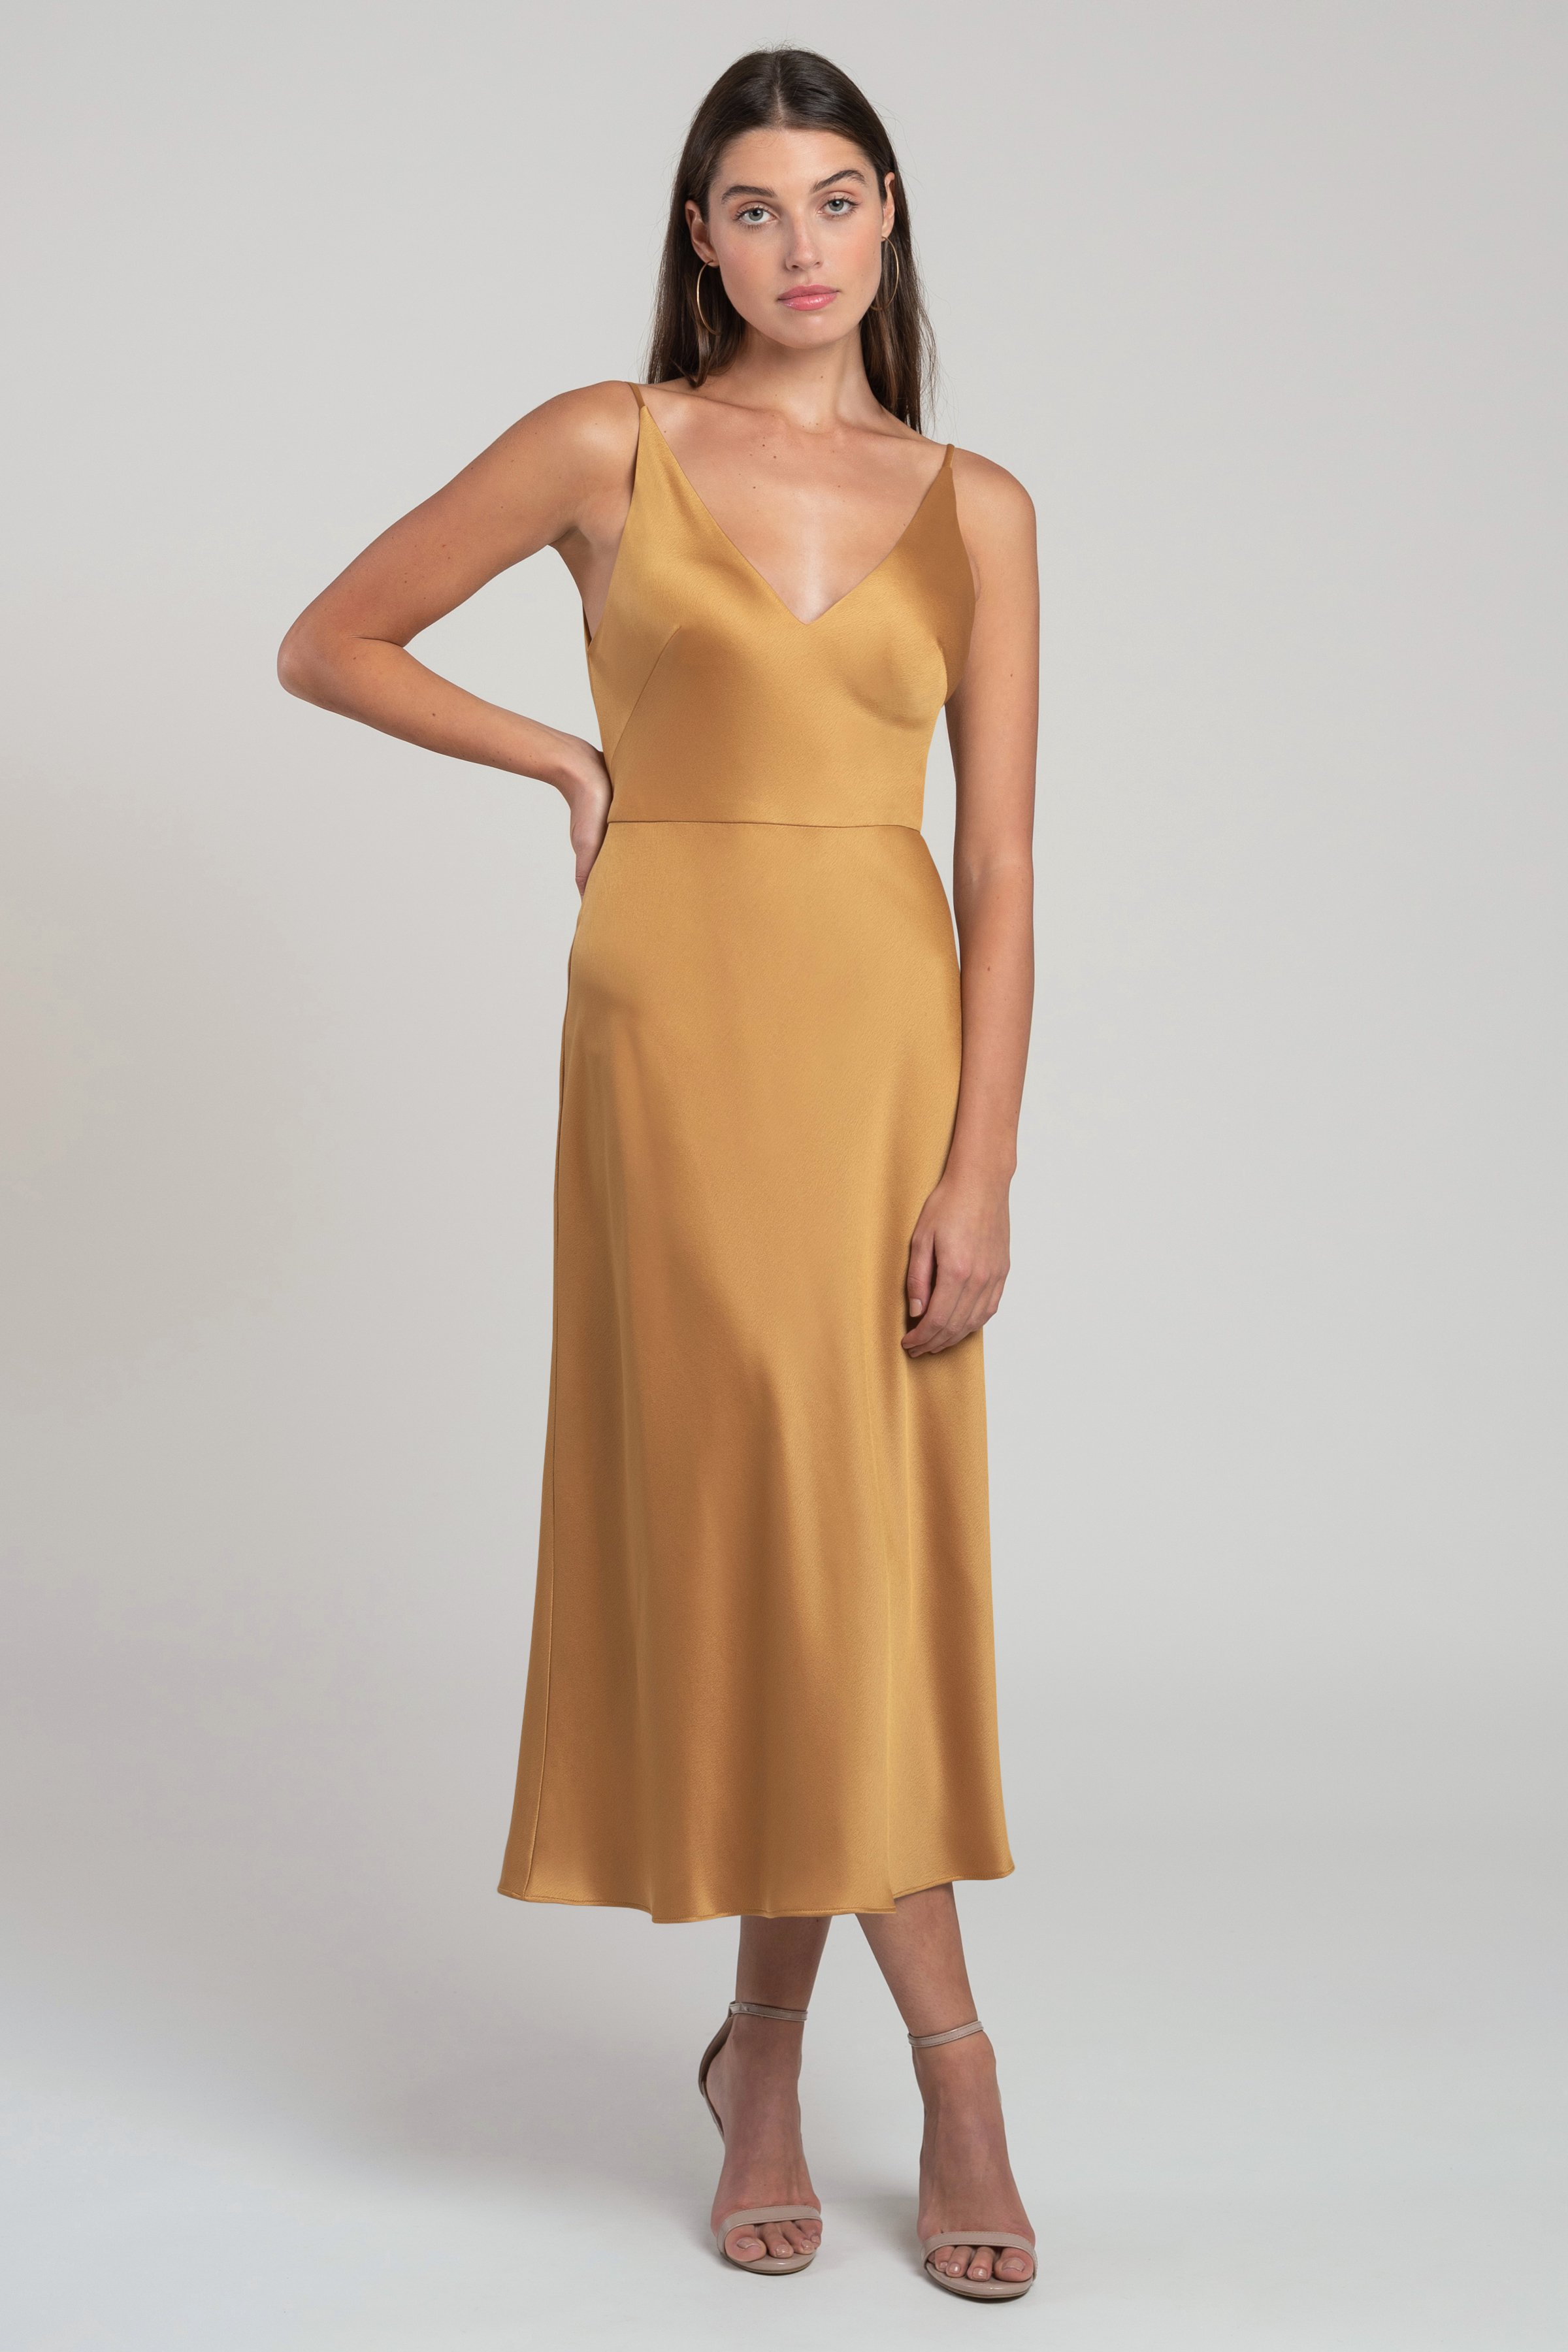 The Marcy V-neck satin midi length bridesmaid dress gives you all of the slinky appeal of a classic sip dress, in an easier to wear silhouette with a natural waist seam. The not-too-low V neckline and body skimming bias cut skirt make this a very flattering style.